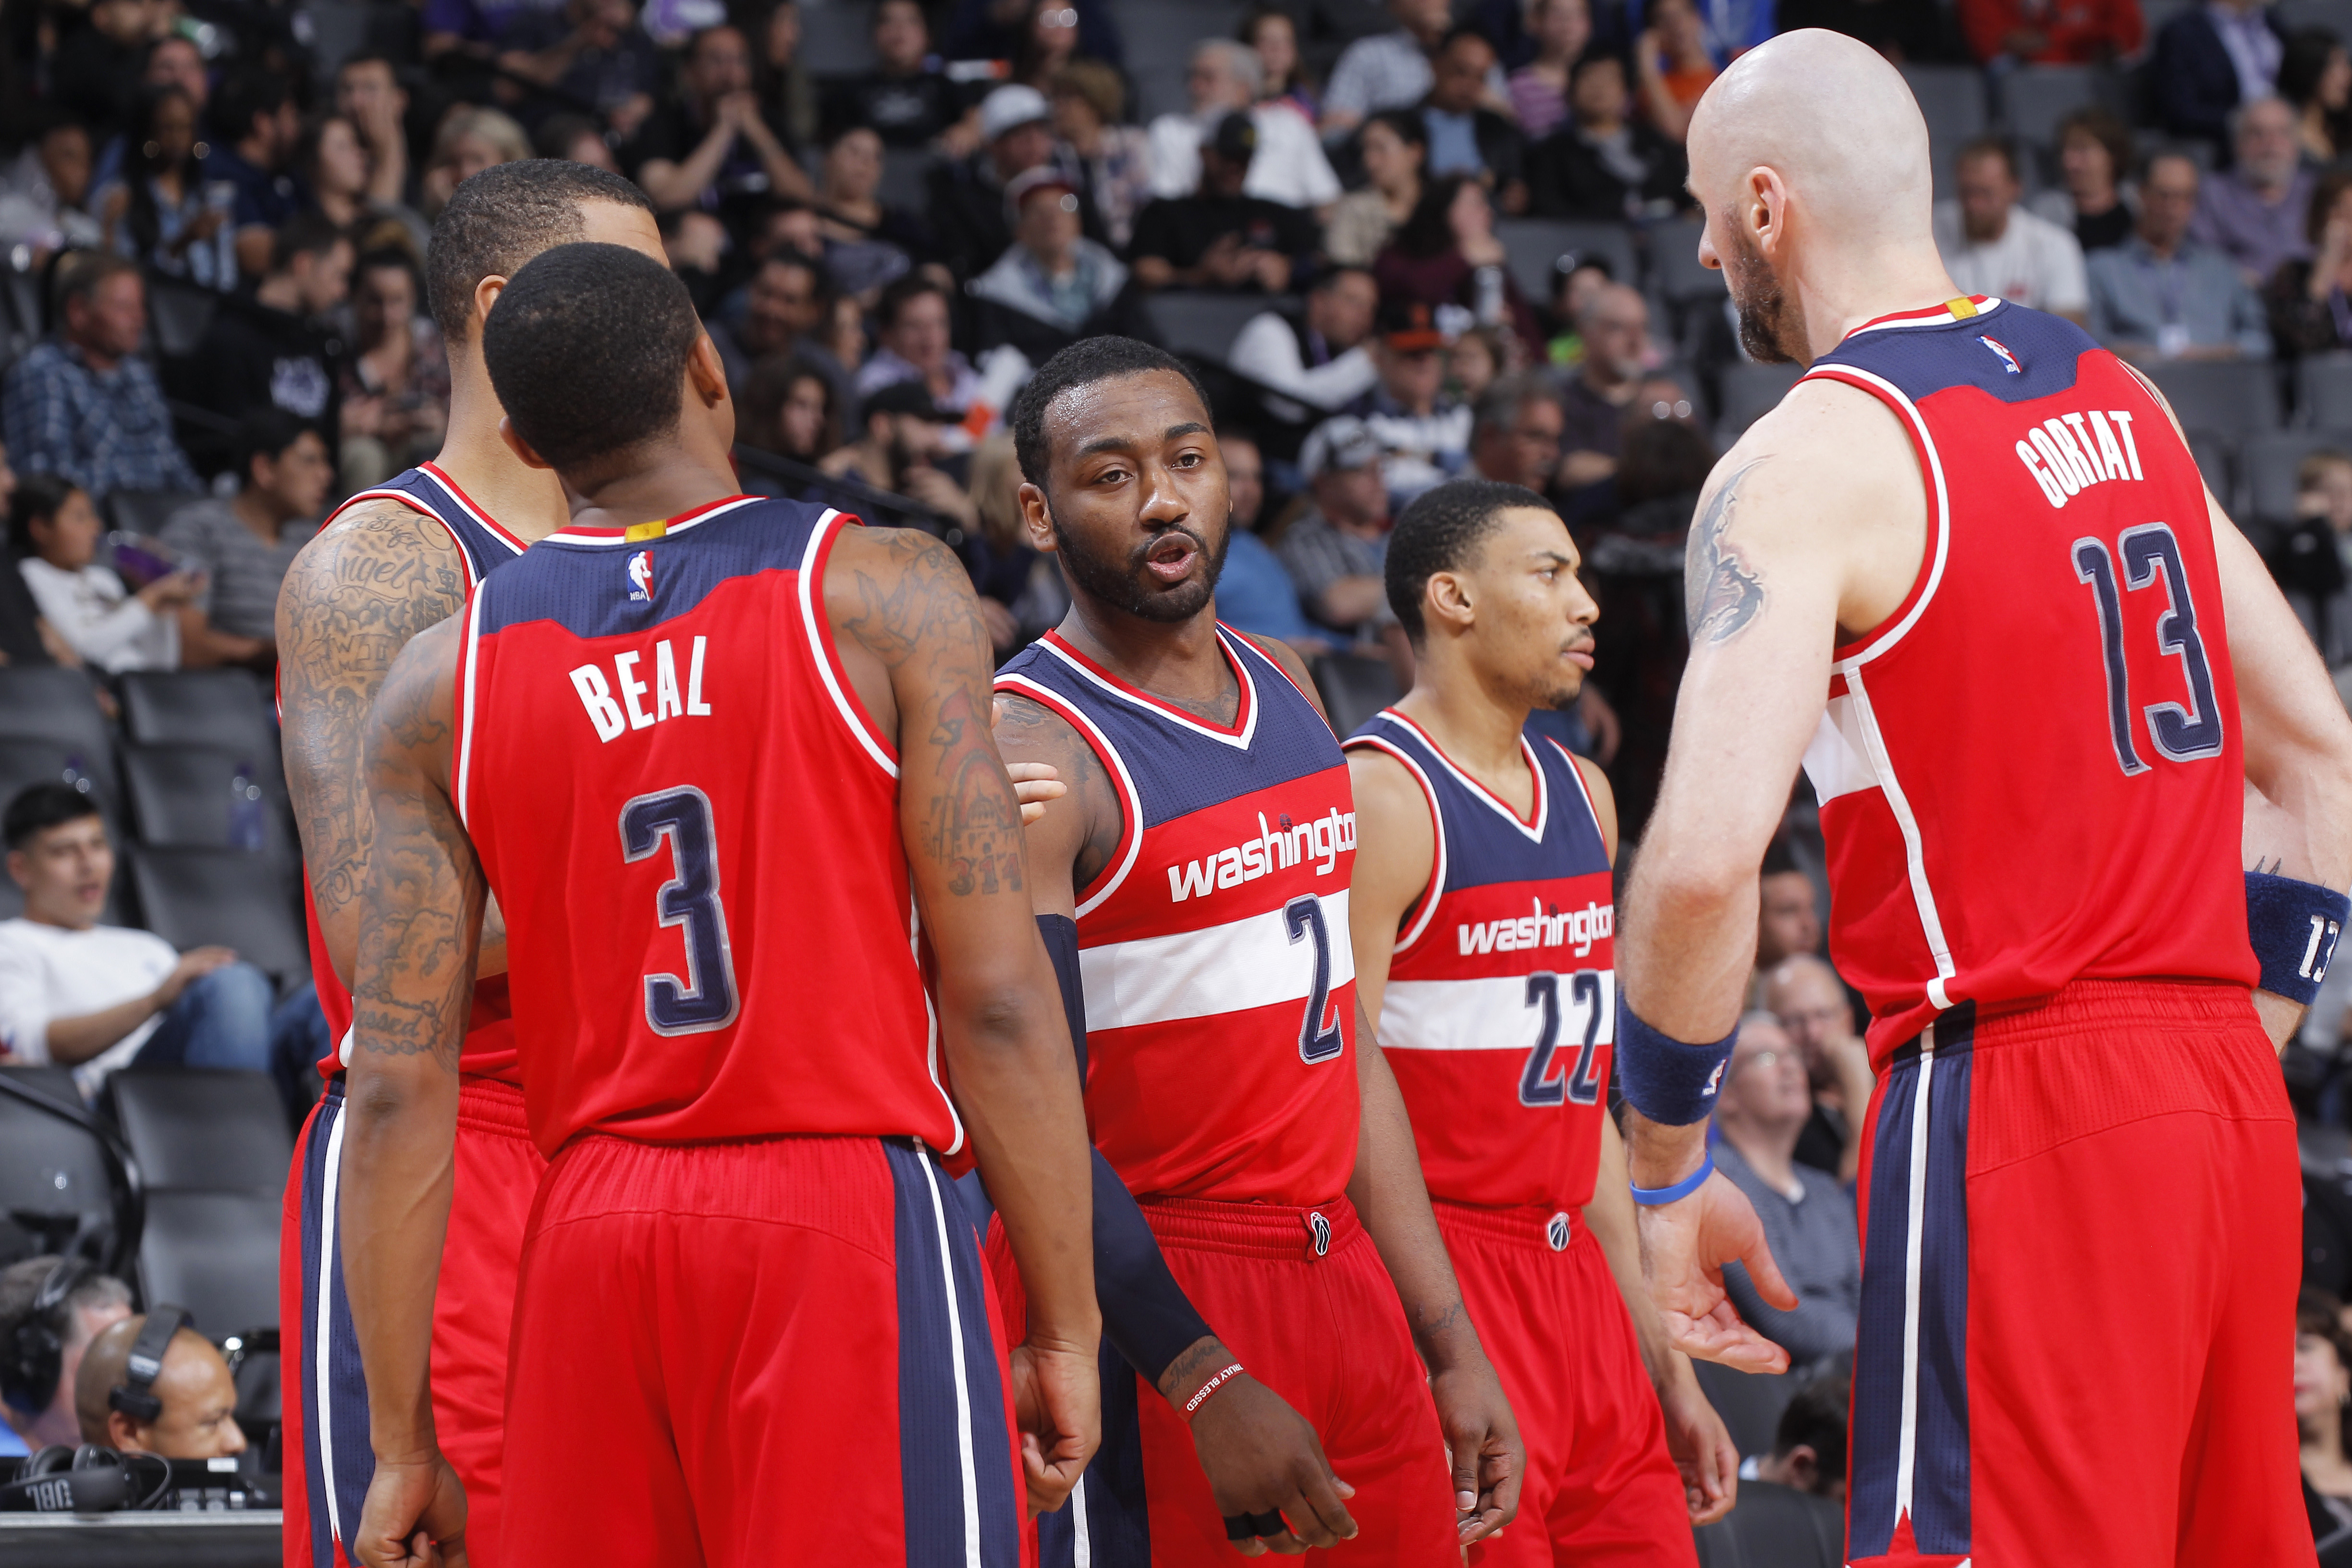 sacramento ca march 10 bradley beal 3 john wall 2 otto porter 22 and marcin gortat 13 of the washington wizards huddle up during the game against